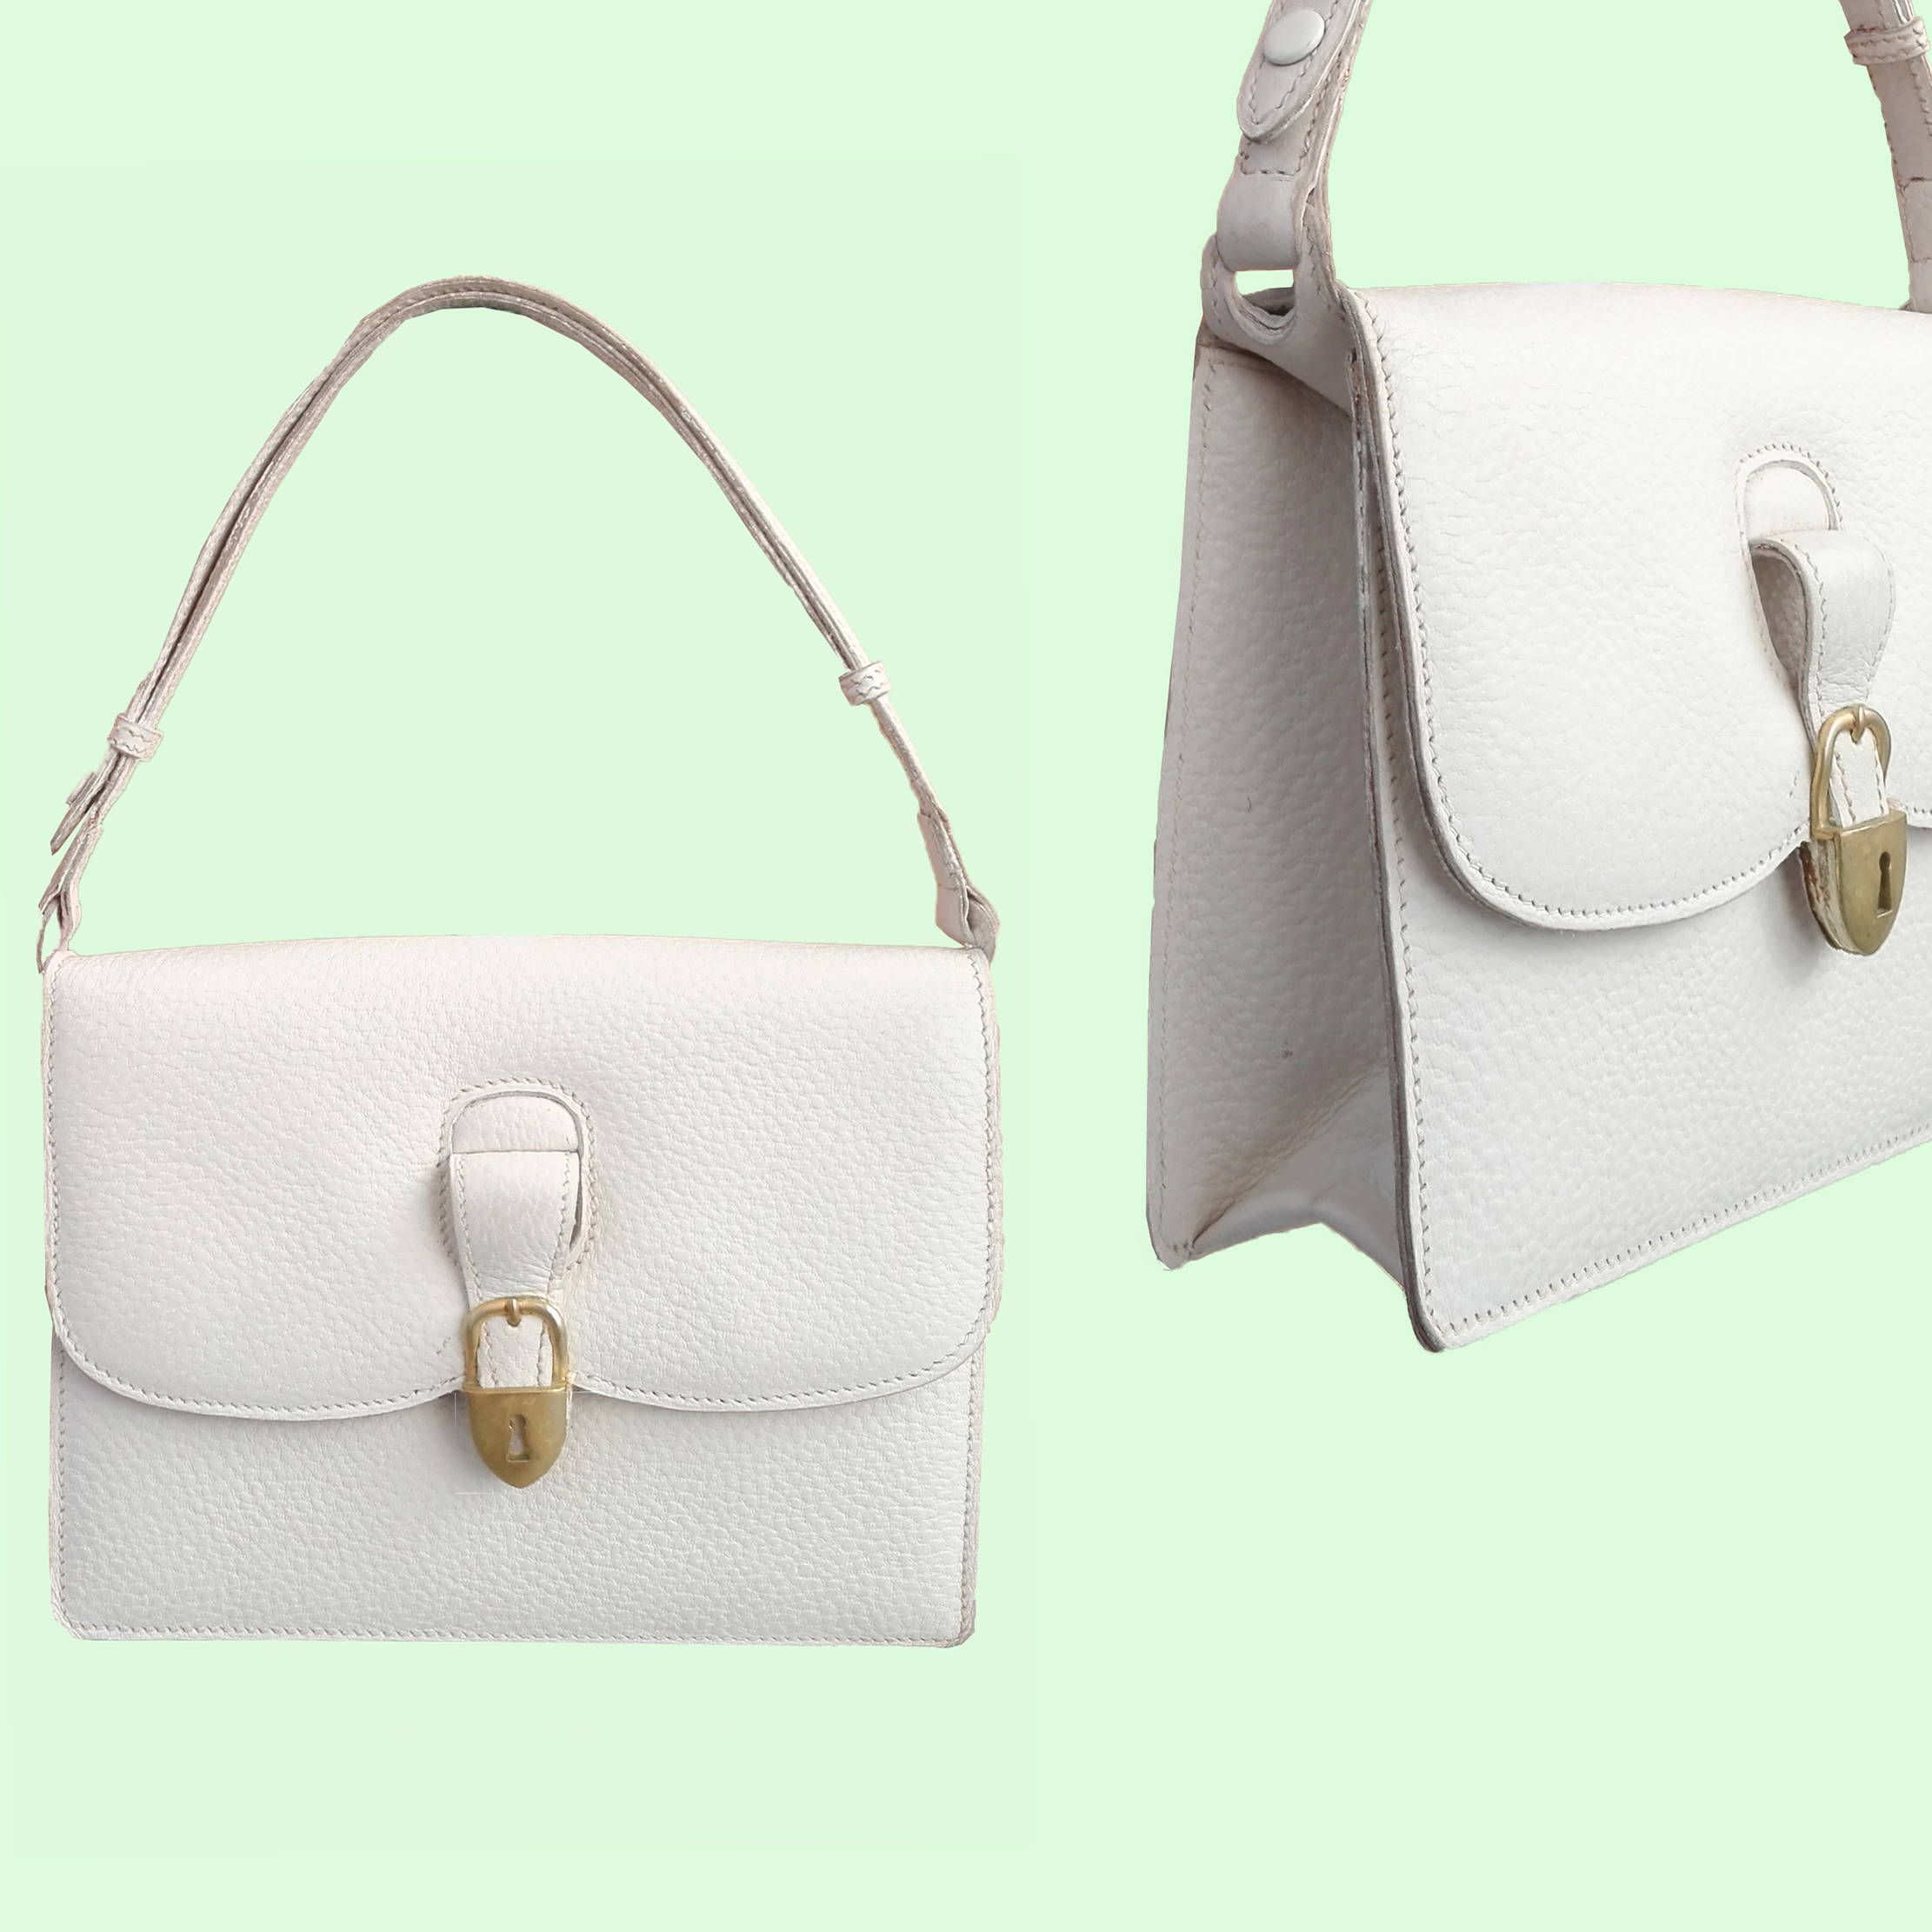 6105943f350 GUCCI vintage bag leather handbag white sac tasche borsa ULTRA RARE 50s 60s  - Museum Int. Perfect Conditions